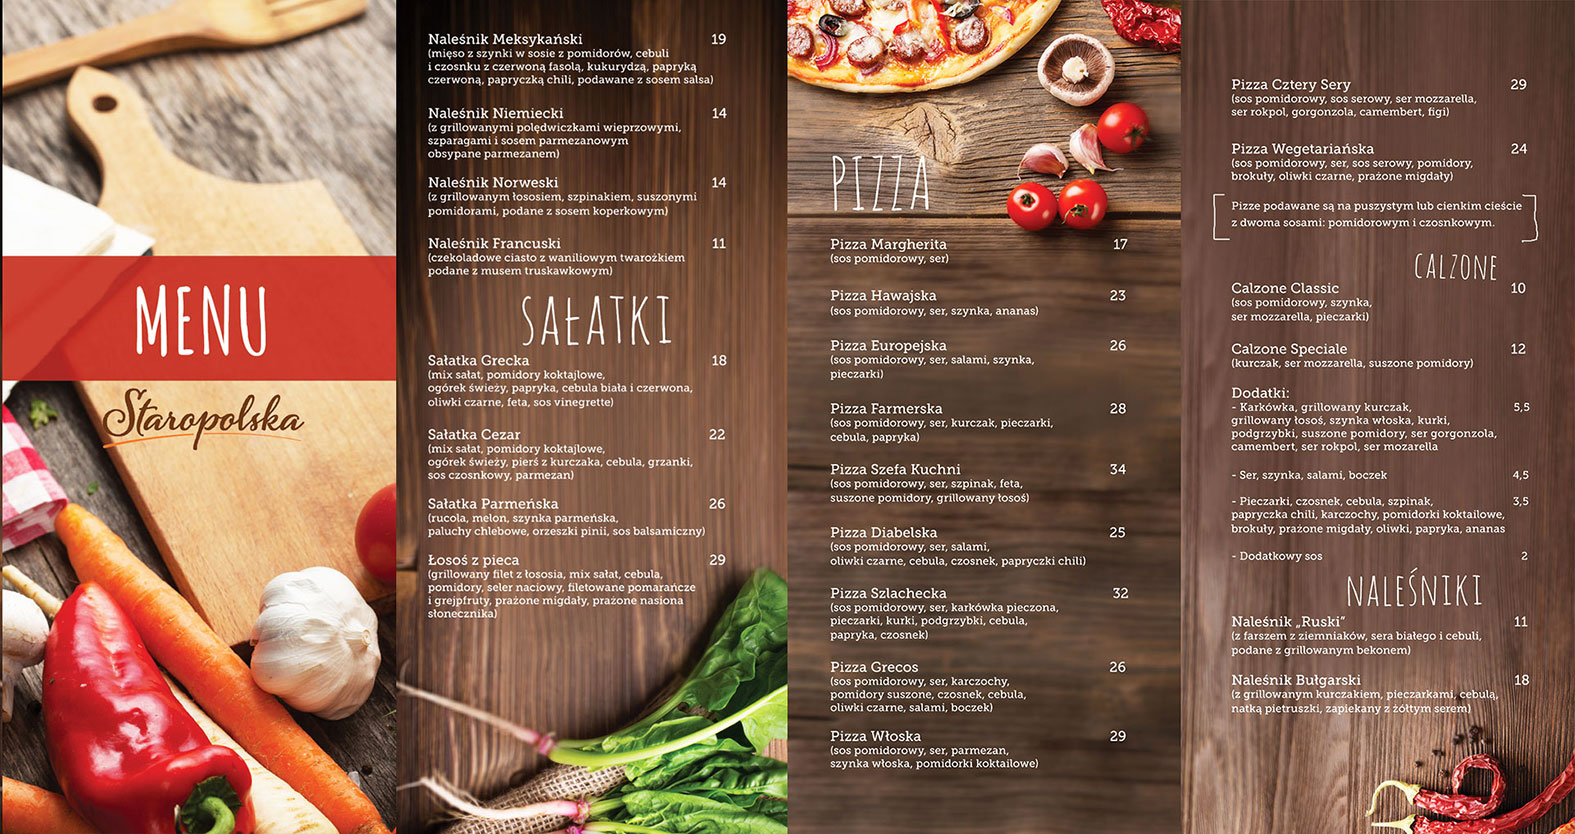 Layout of the menu